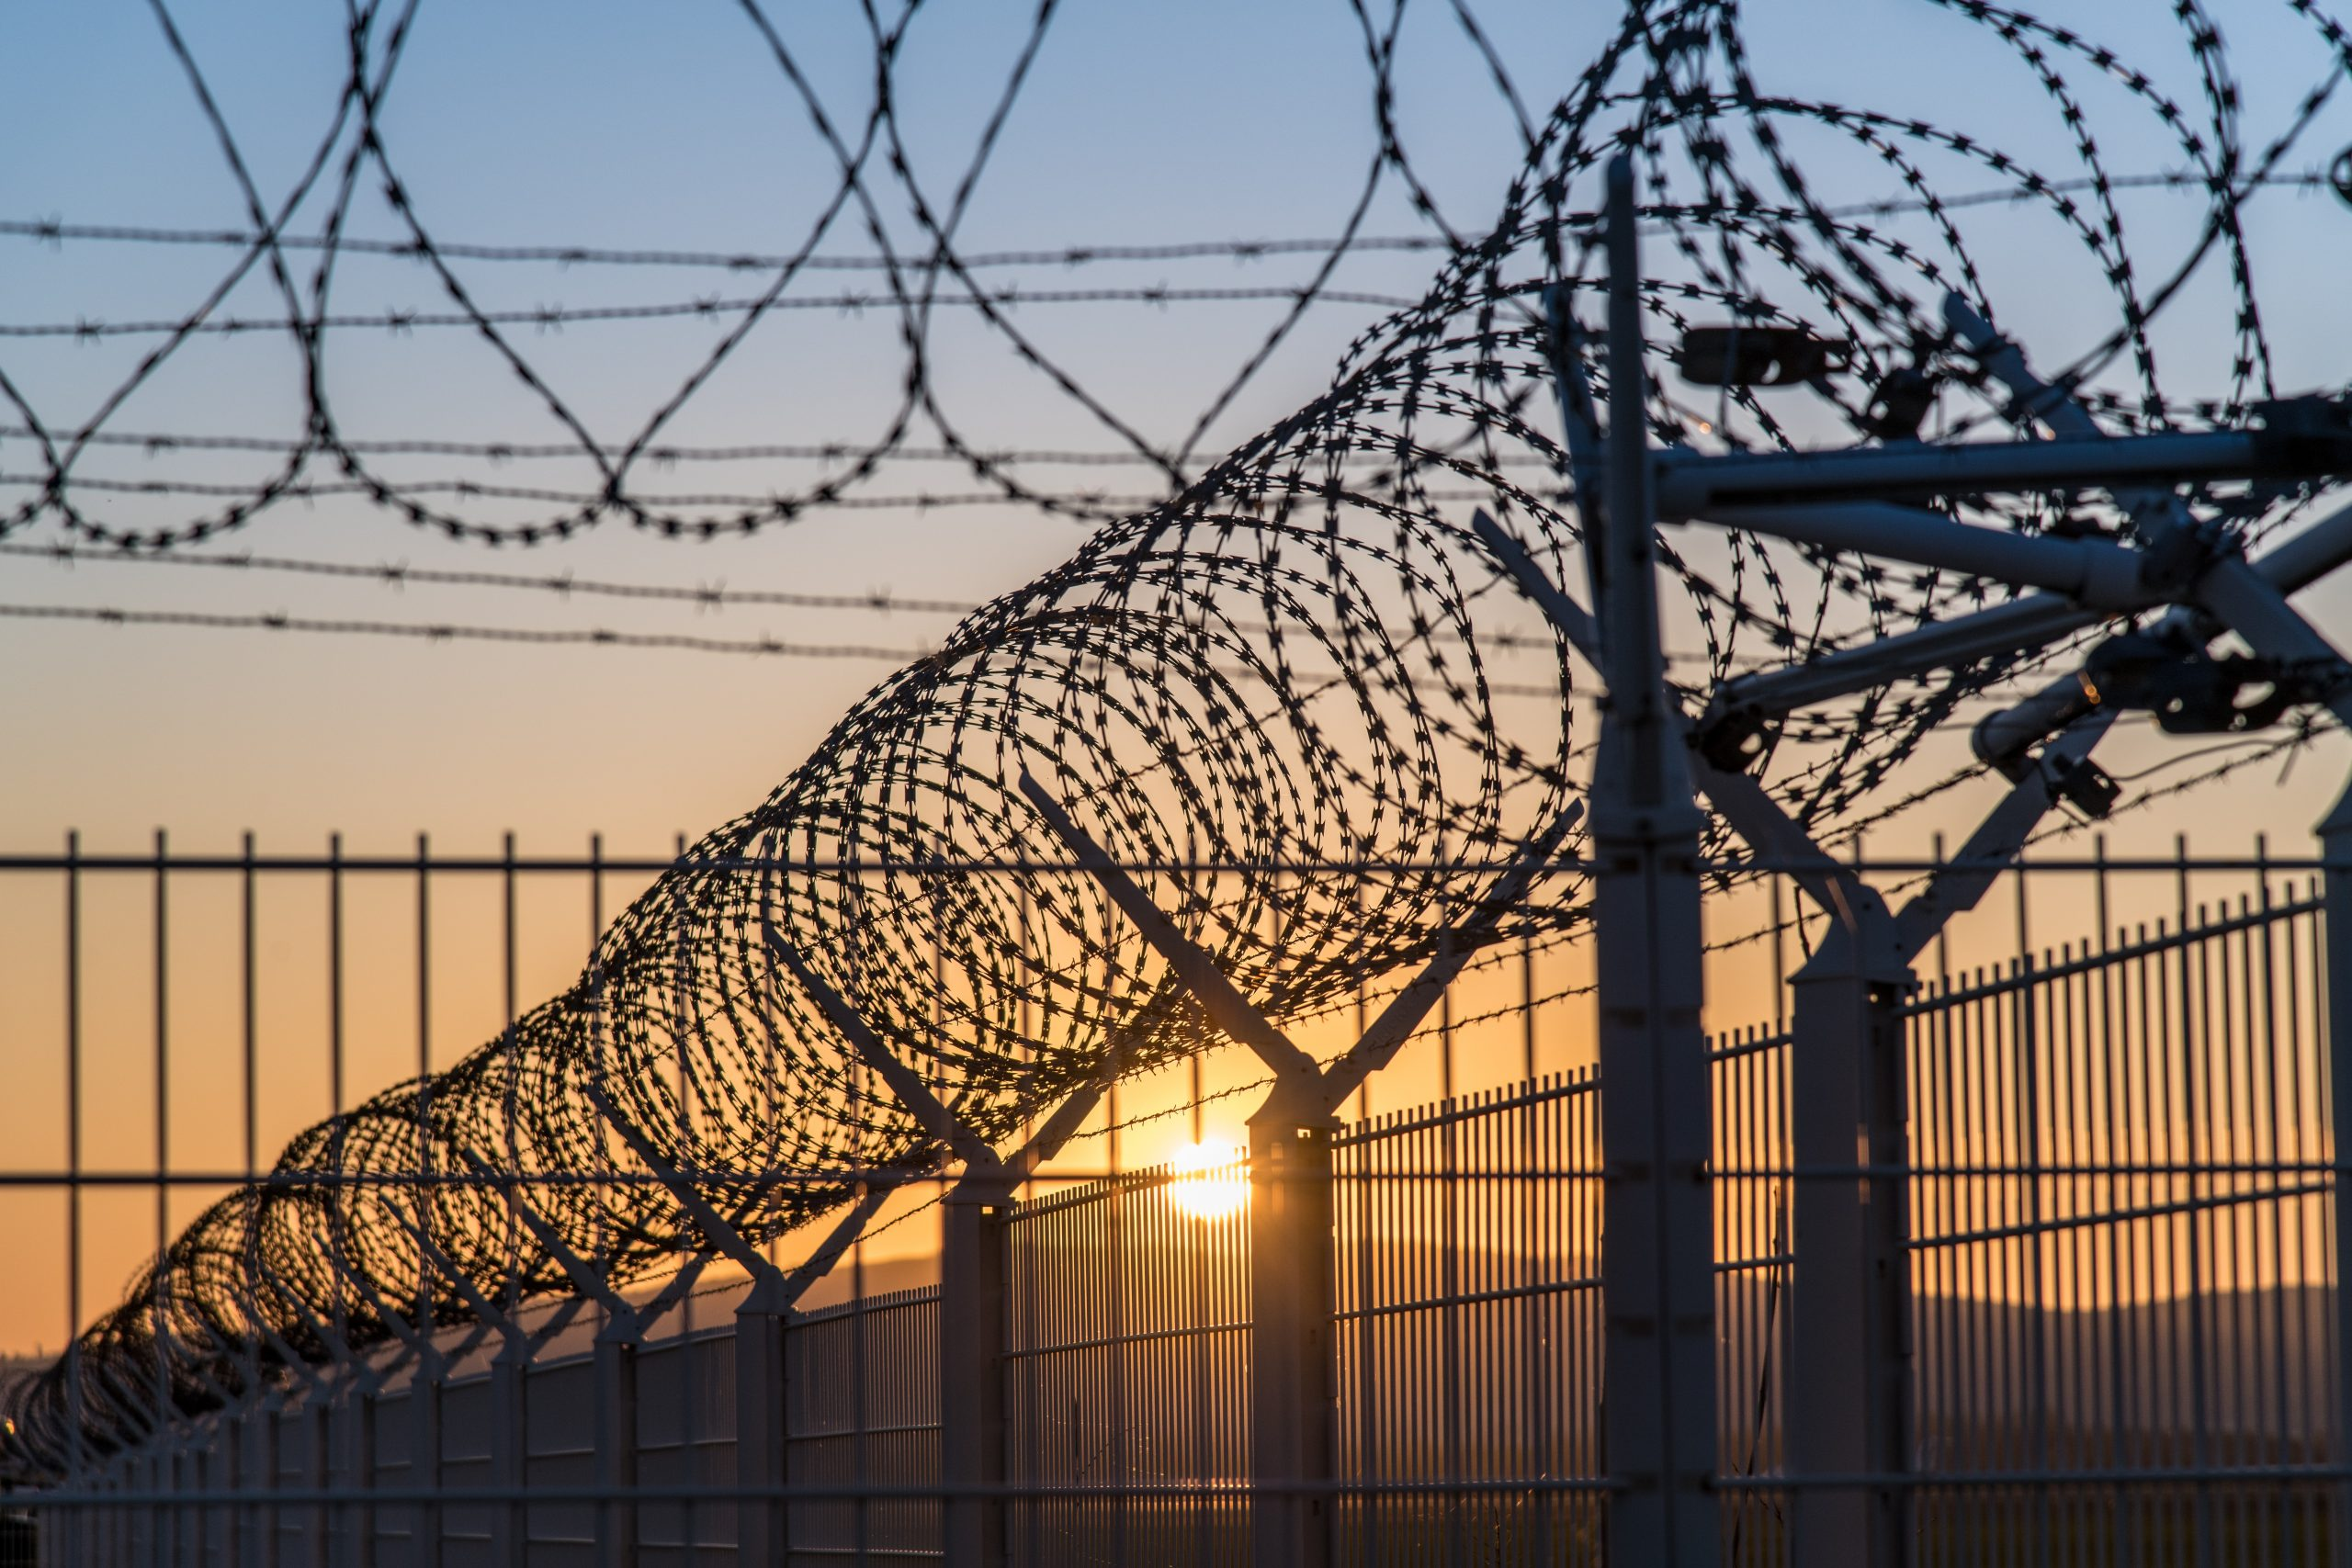 Calling out a lack of pandemic policy action for prisoners and other vulnerable groups